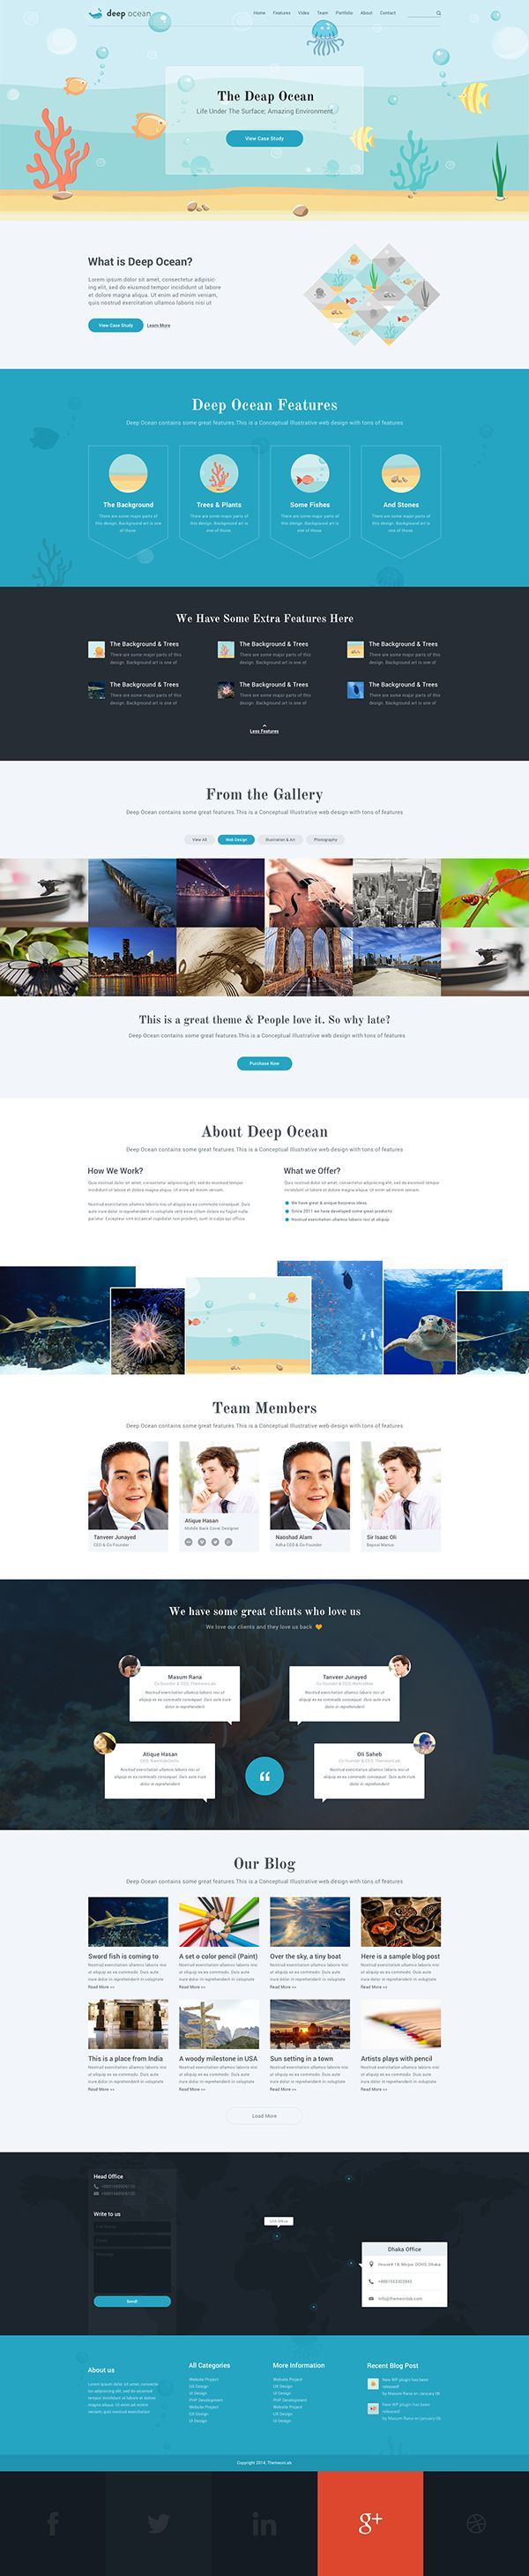 How to design a website for kids - Buy Deep Ocean Single Page Psd Template By Themexy On Themeforest Deep Ocean Has A Nice Illustration On Its Slider And Over The Whole Design